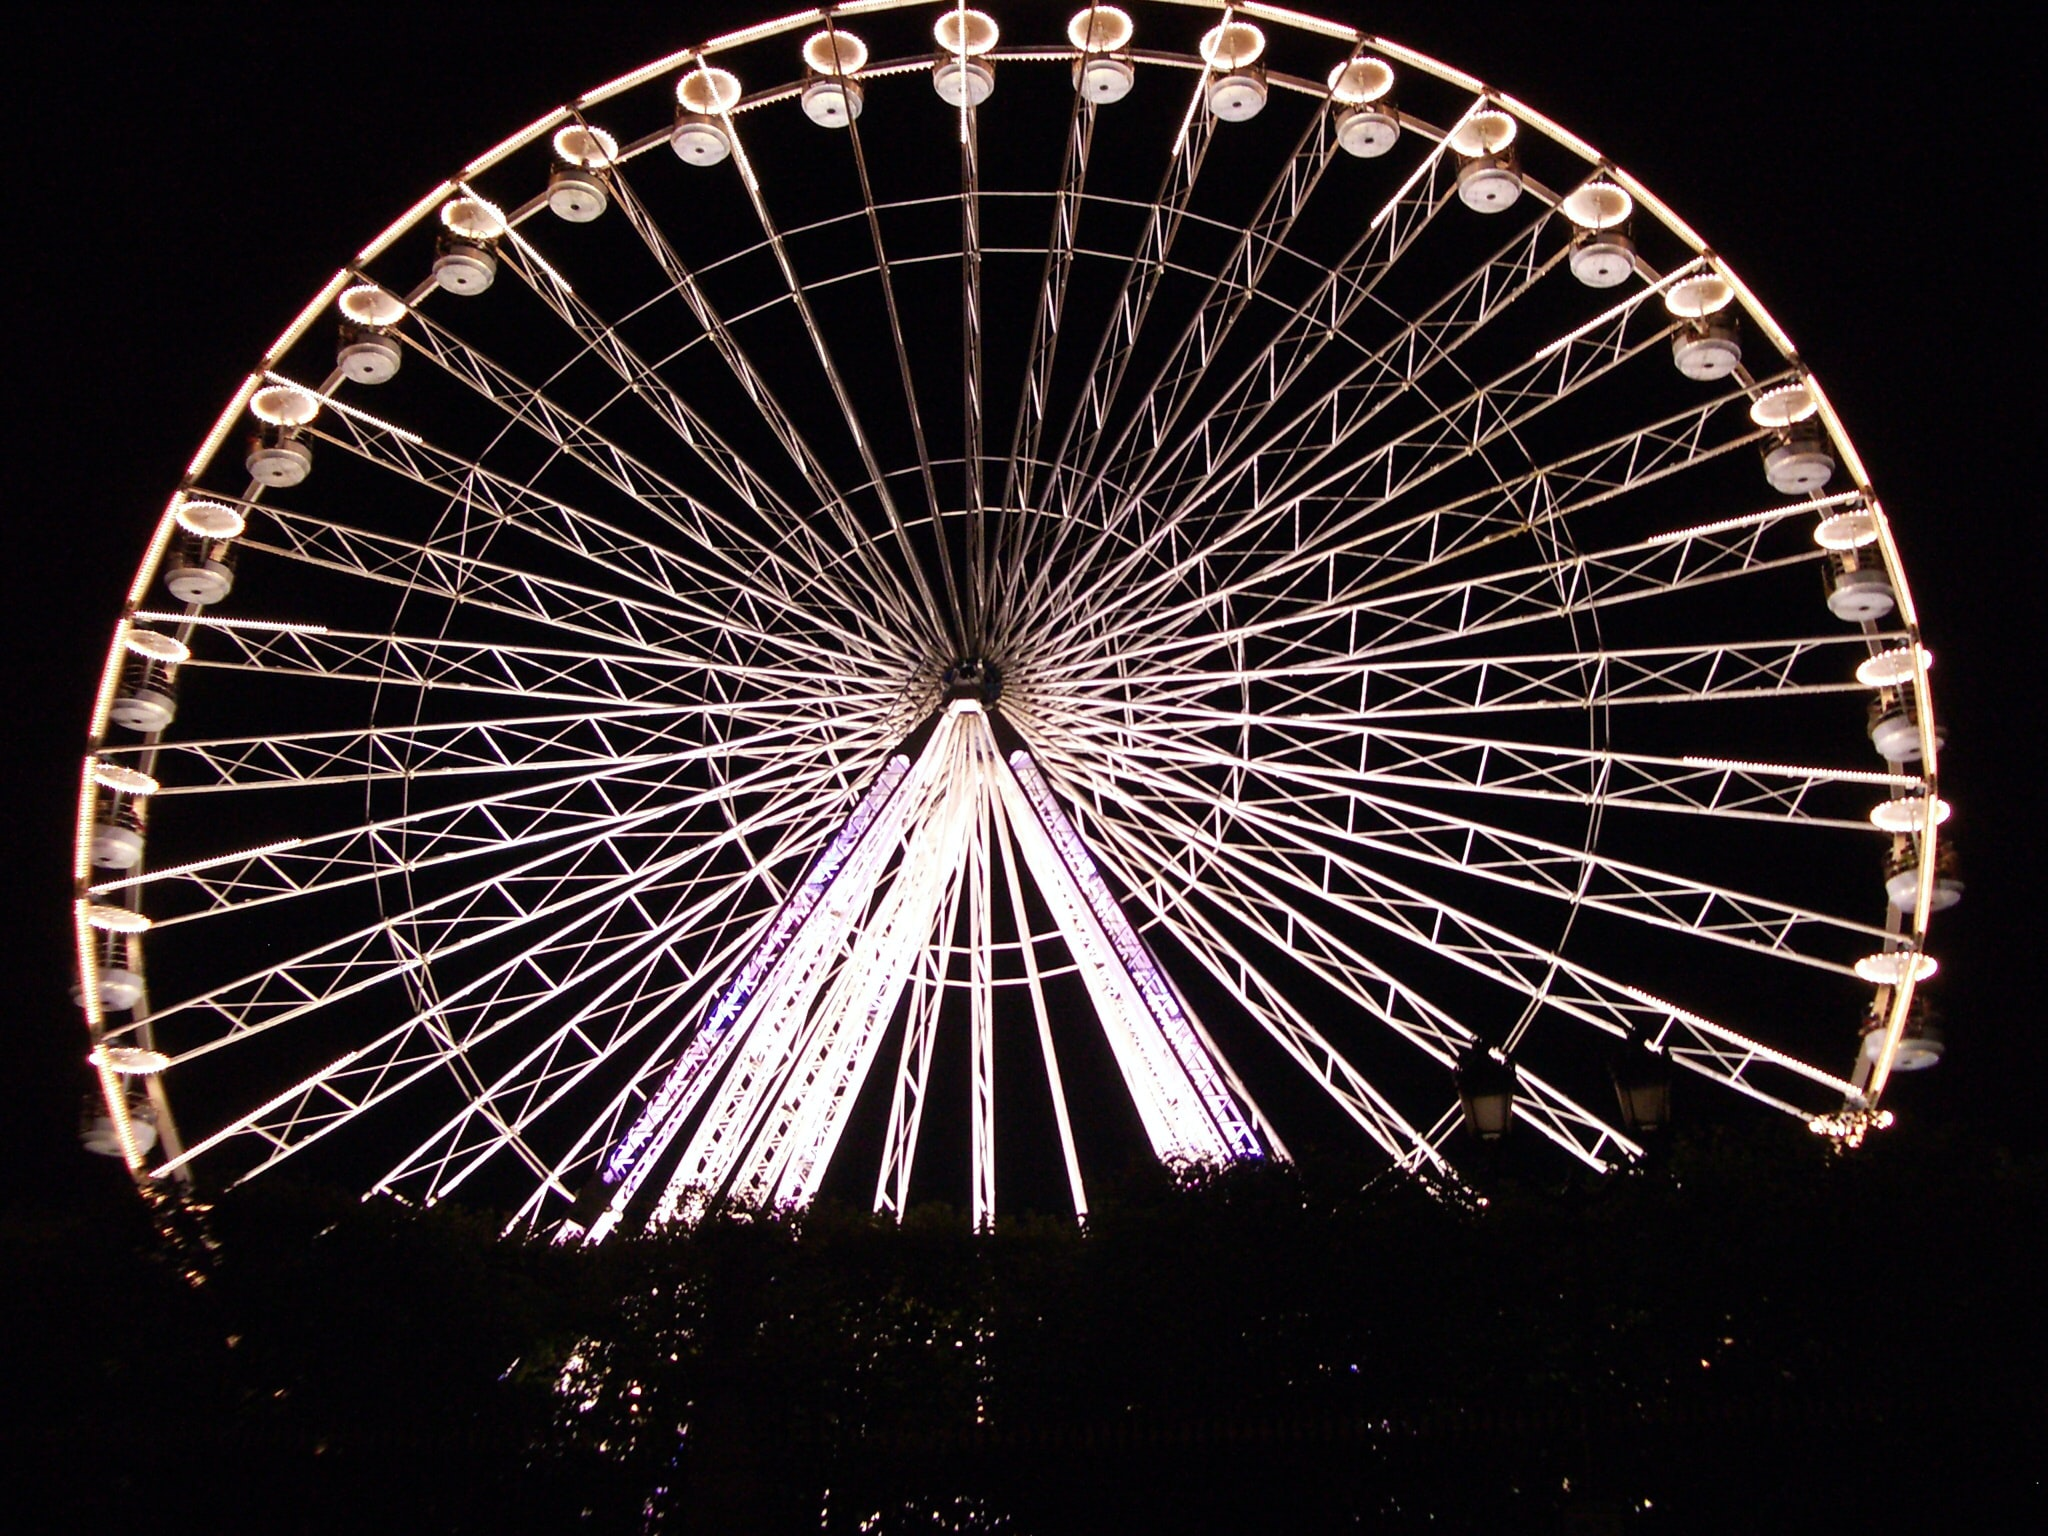 photo of lighted ferris wheel during nighttime